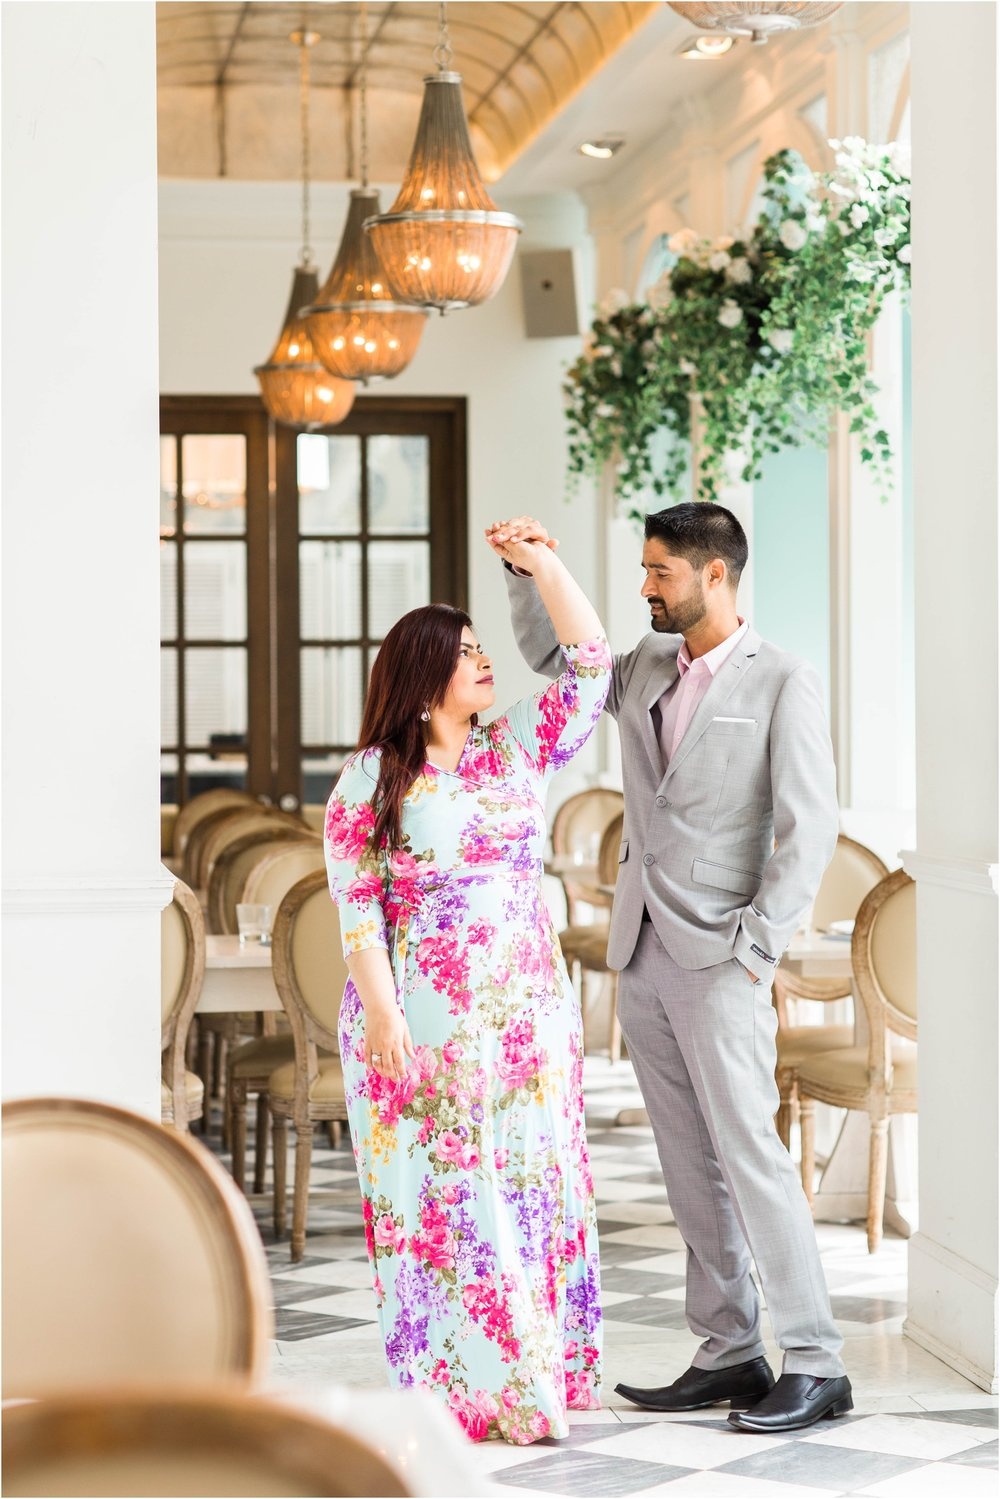 Colette-Grand-Cafe-Thompson-Hotel-Osgoode-Hall-Engagement-Session-Toronto-Mississauga-Brampton-Scarborough-GTA-Pakistani-Indian-Wedding-Engagement-Photographer-Photography_0013.jpg